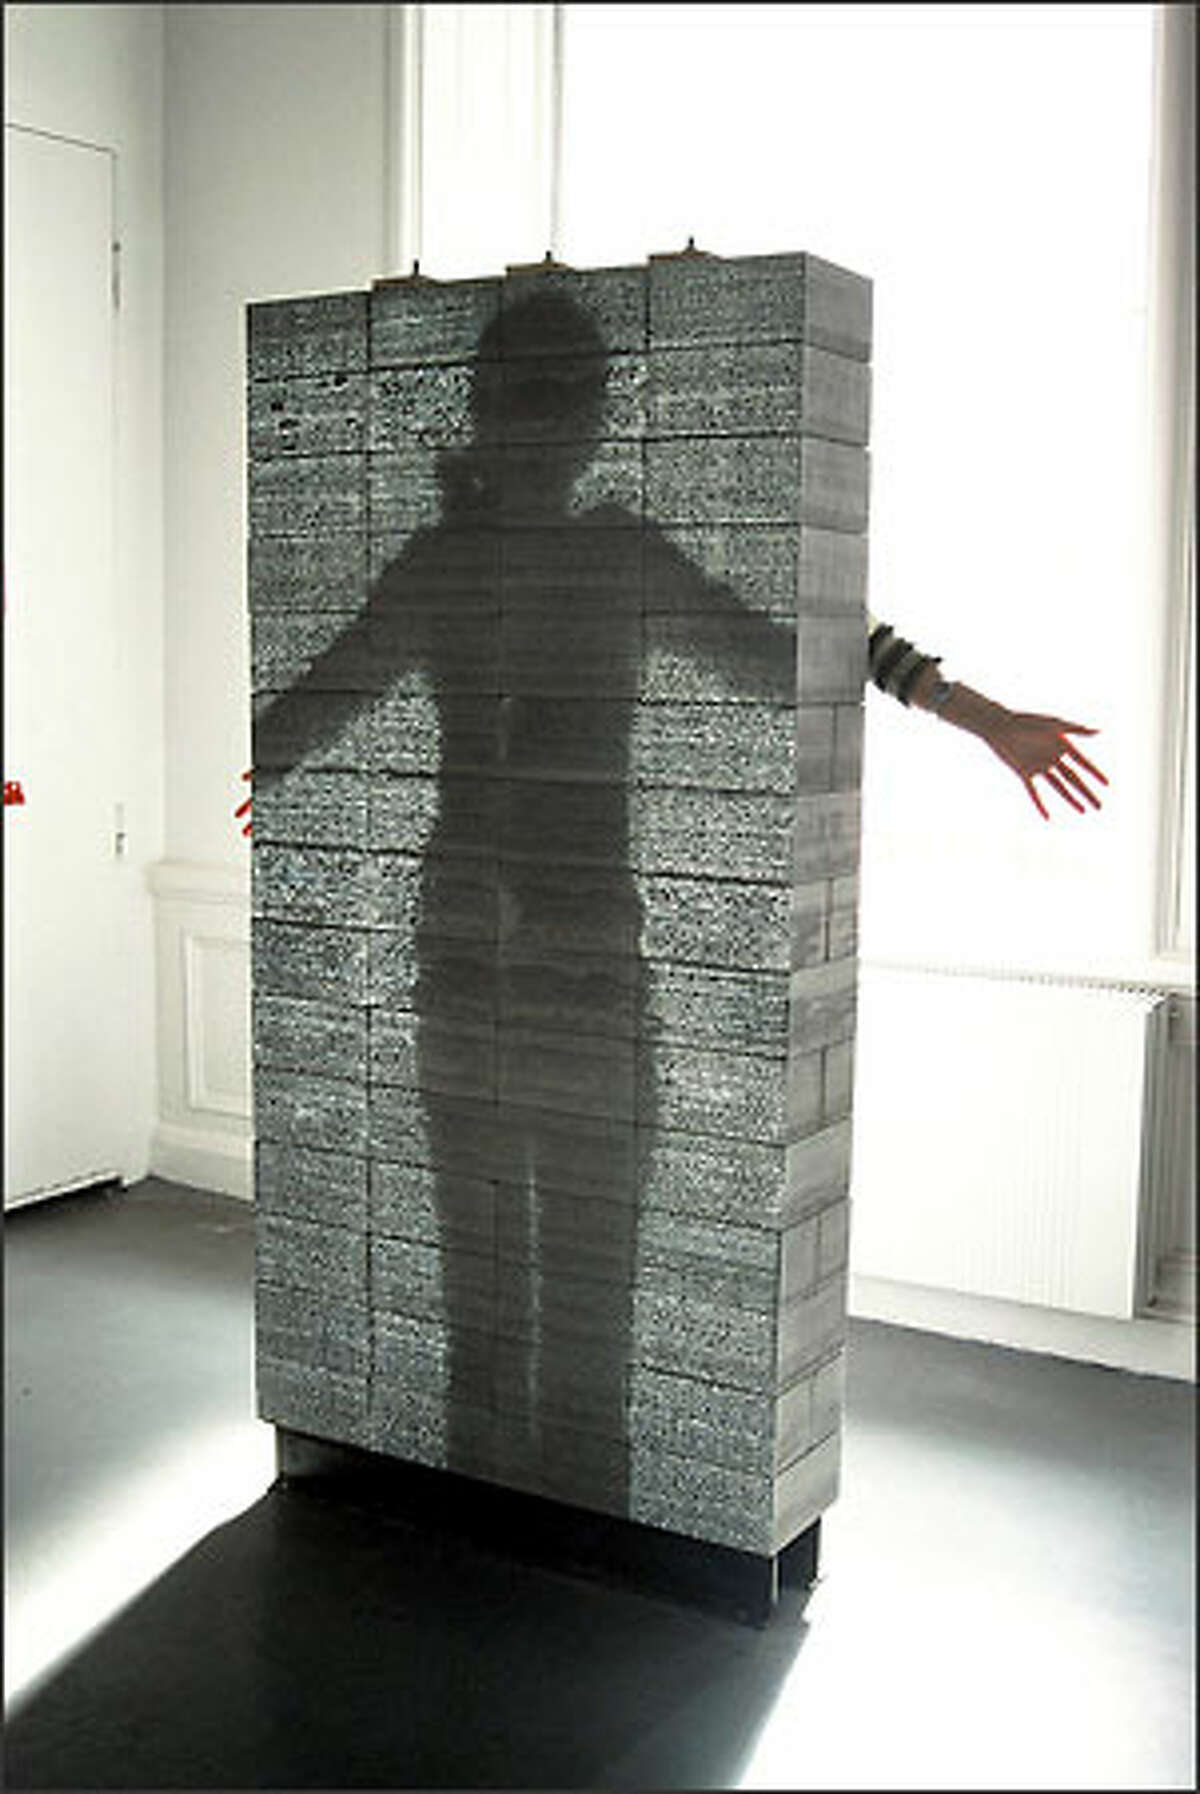 A prototype wall of translucent concrete is shown at the National Building Museum. When backlit, a human form can be seen through the wall. The blocks are made by mixing glass fibers into the combination of crushed stone, cement and water.